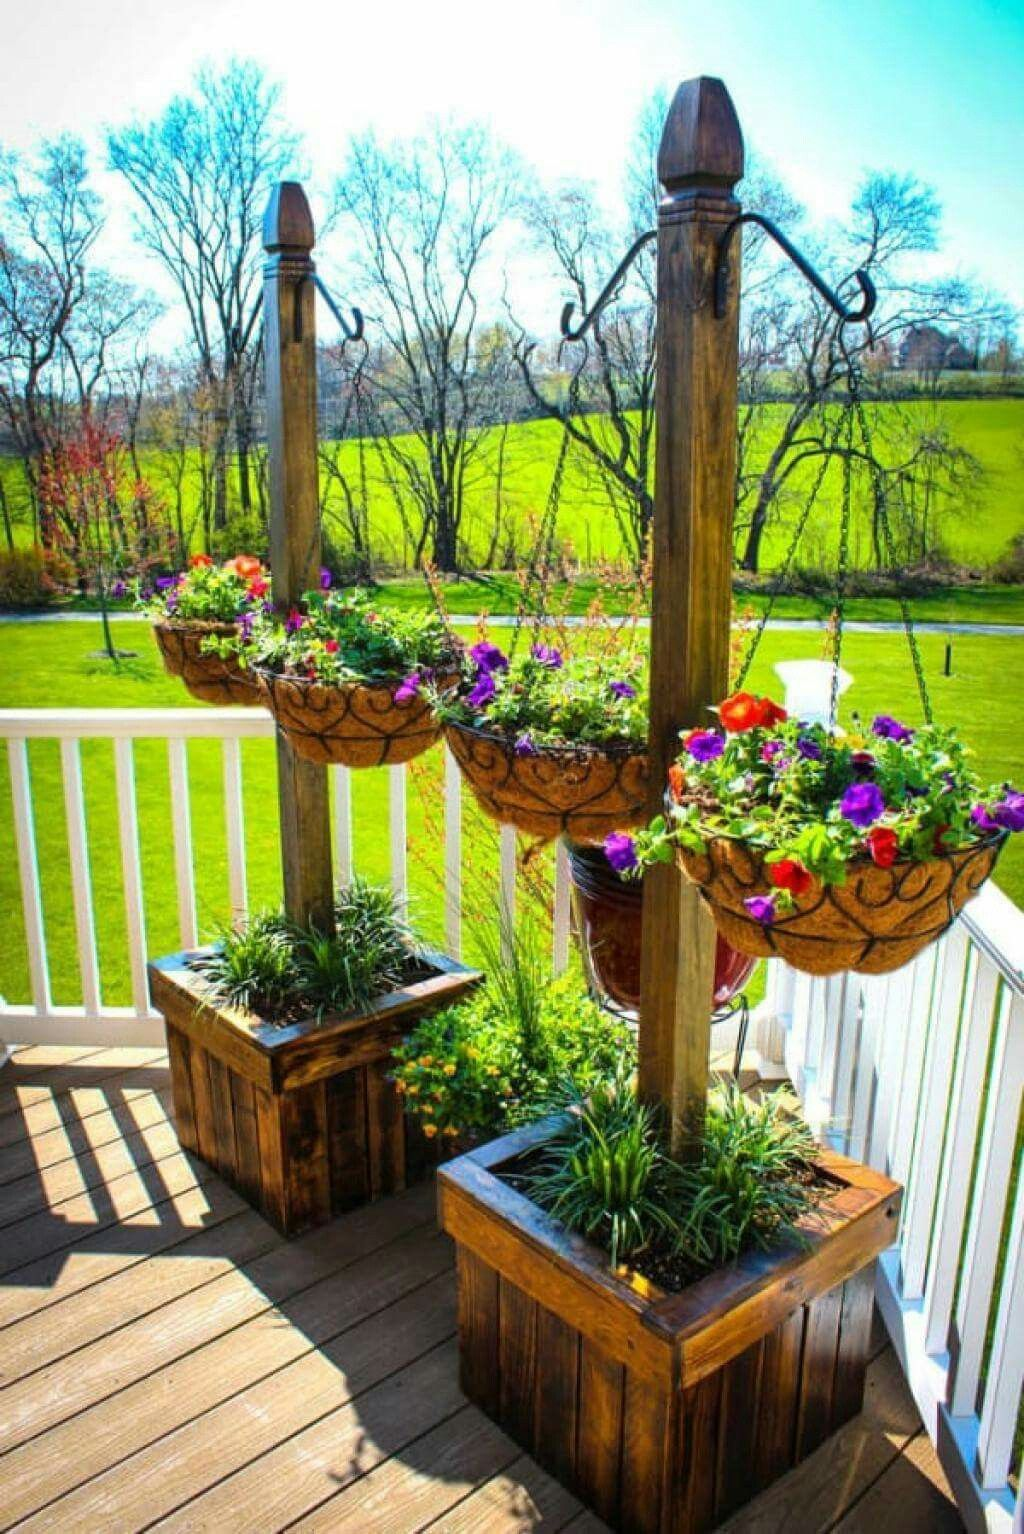 Marvelous Pallet Planter Stands With Hanging Planter Baskets   30 DIY Pallet Ideas  For Your Home